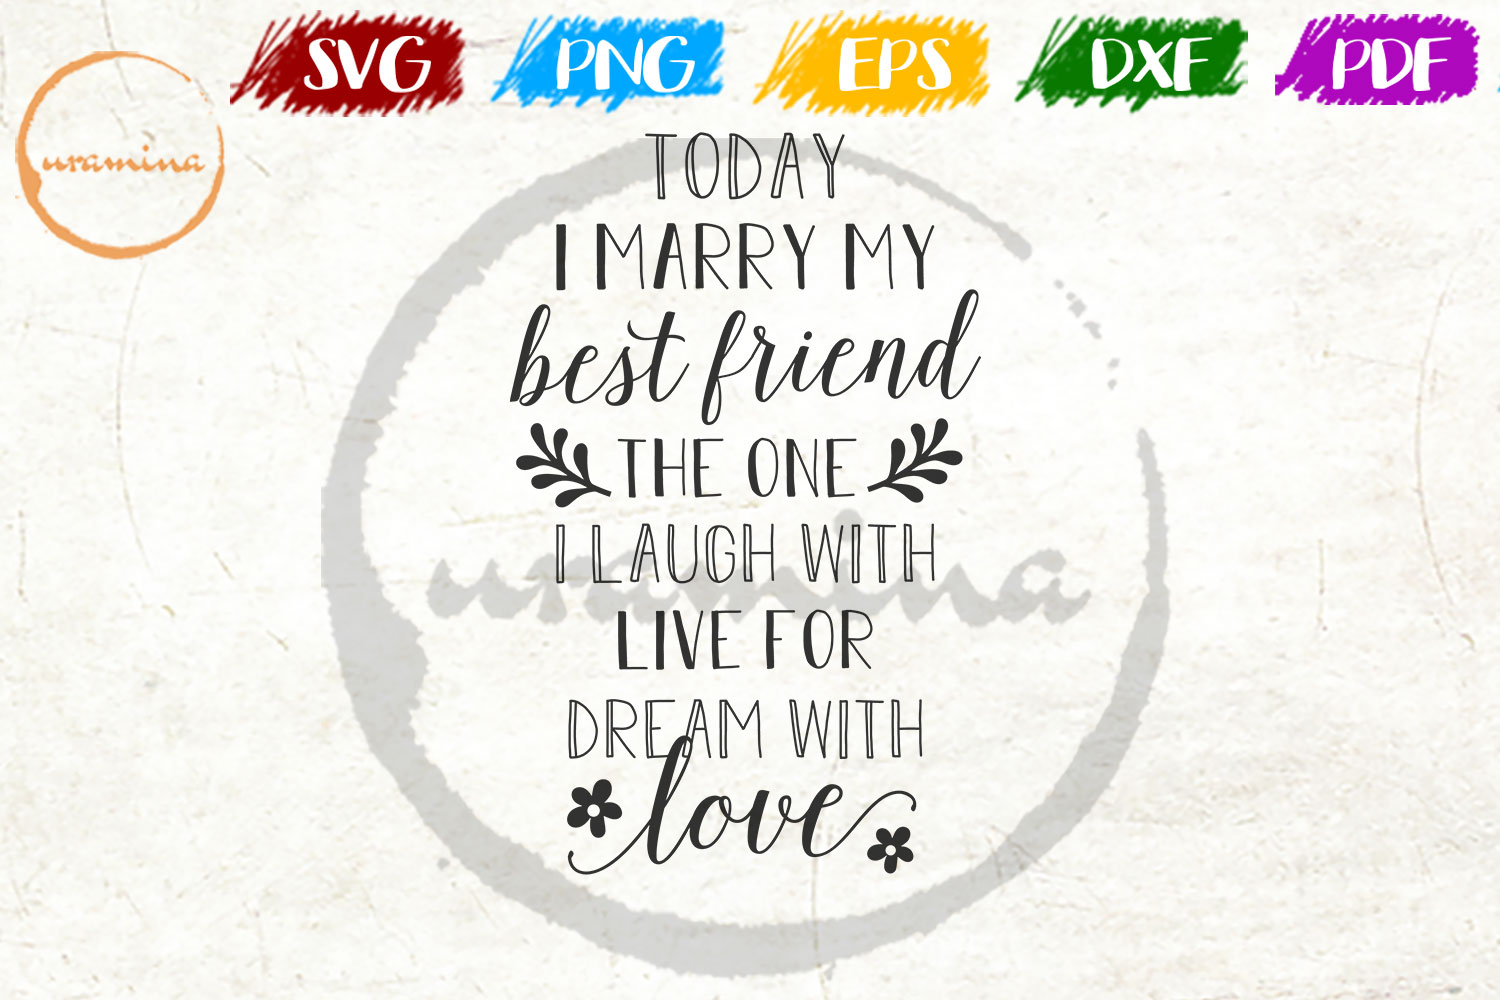 Download Free Today I Marry My Best Friend Graphic By Uramina Creative Fabrica for Cricut Explore, Silhouette and other cutting machines.